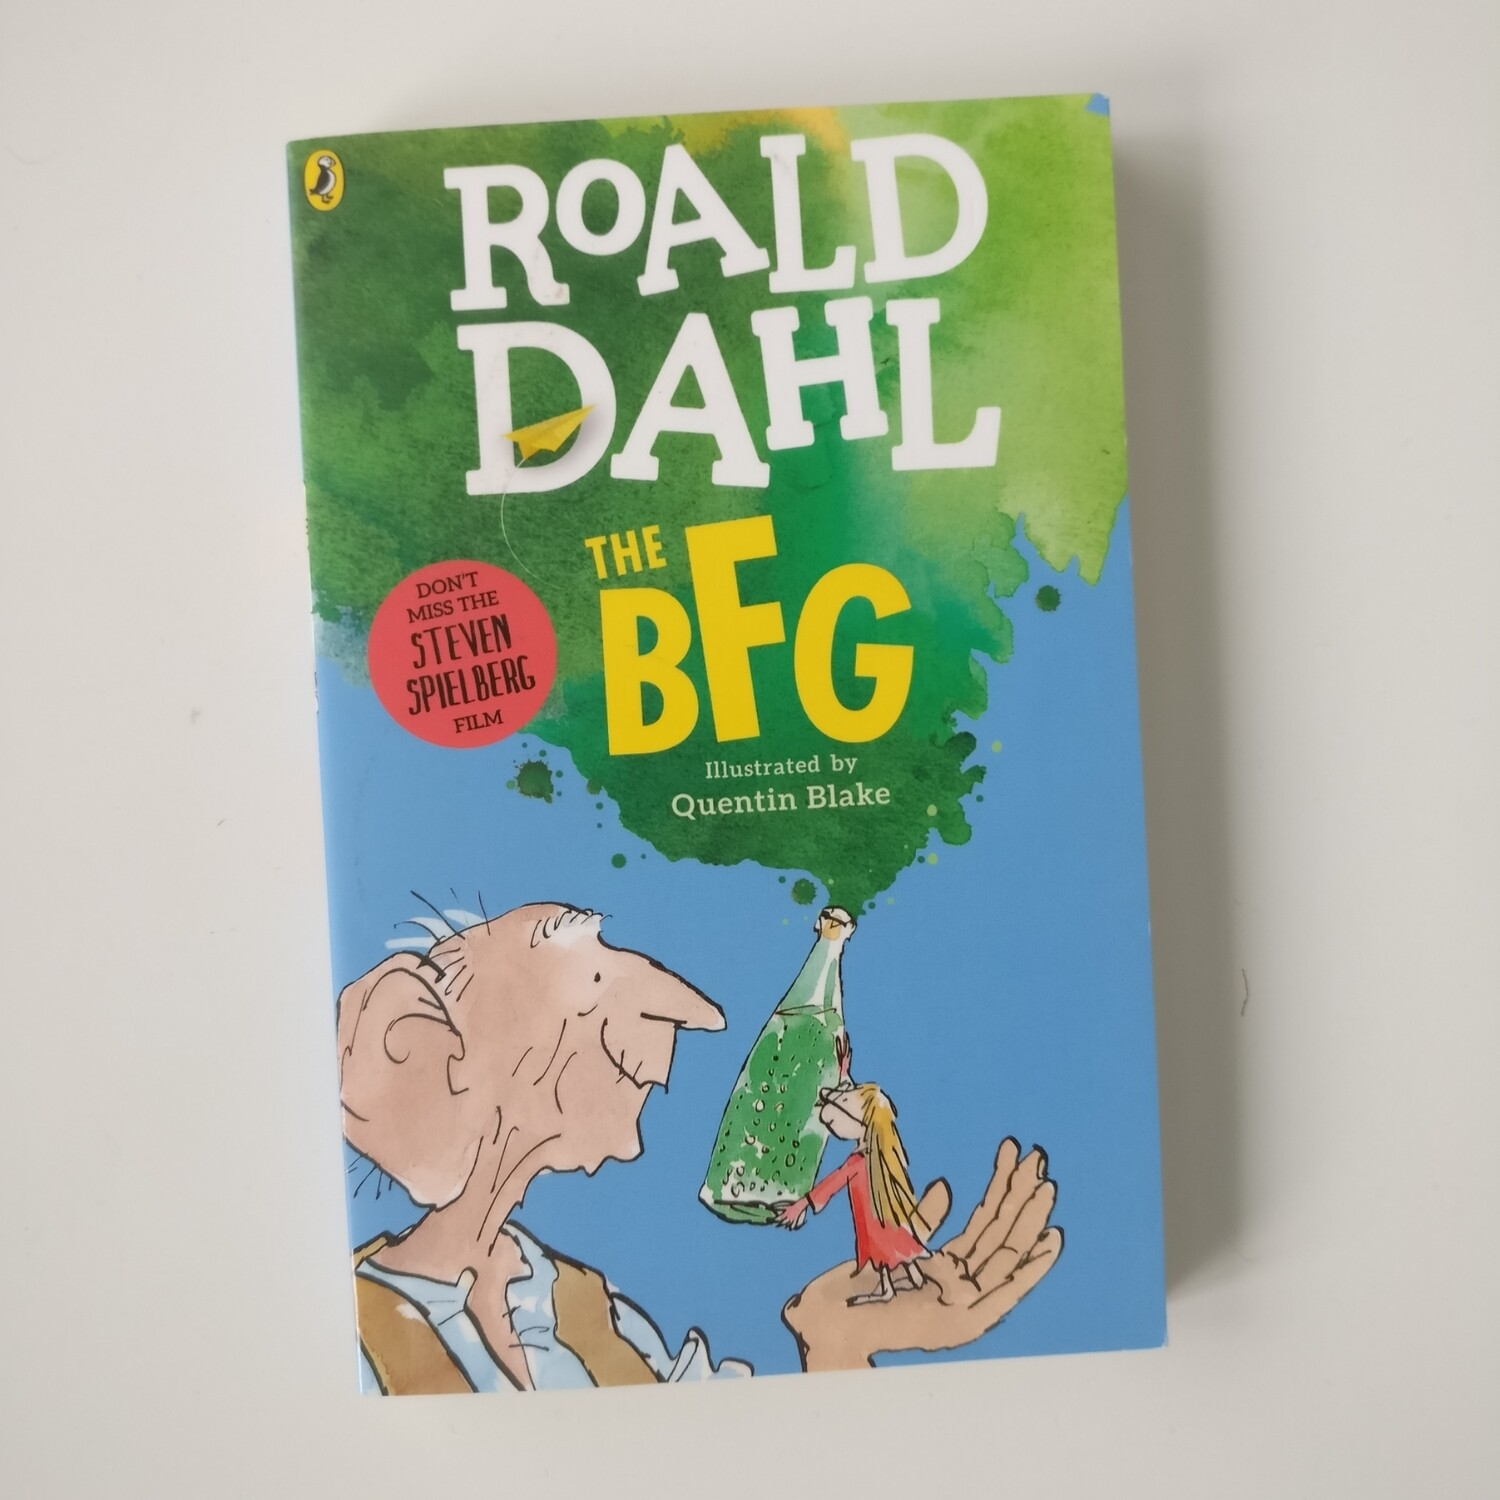 The BFG by Roald Dahl Notebook - made from a paperback book